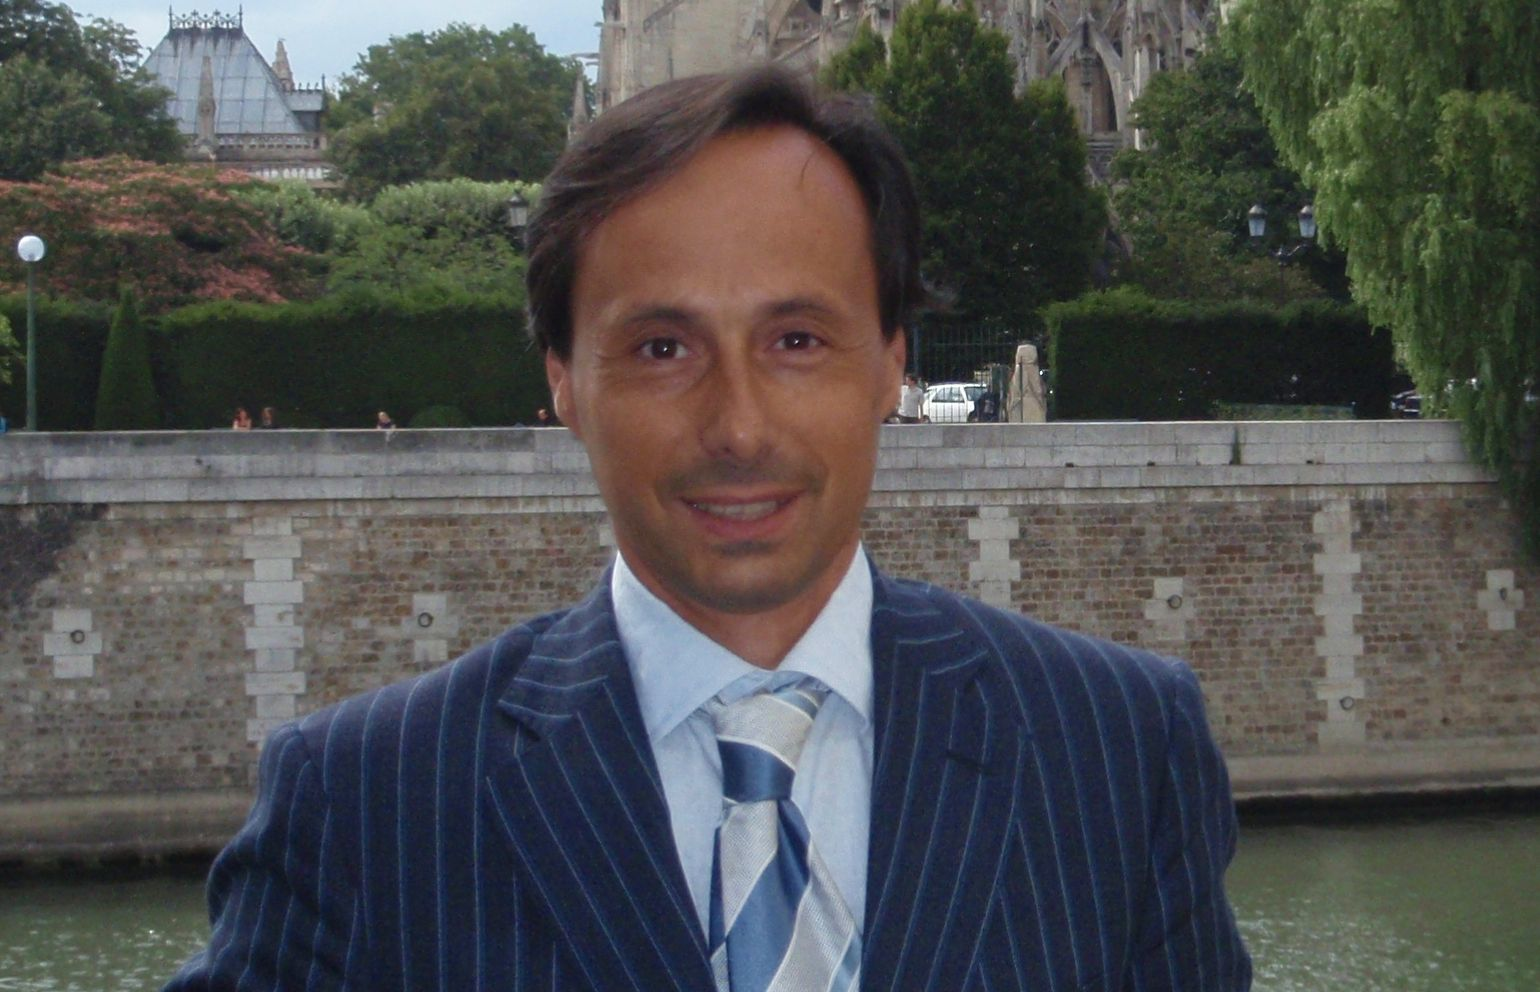 NCR Biochemical Business Manager Alessio Canfailla.